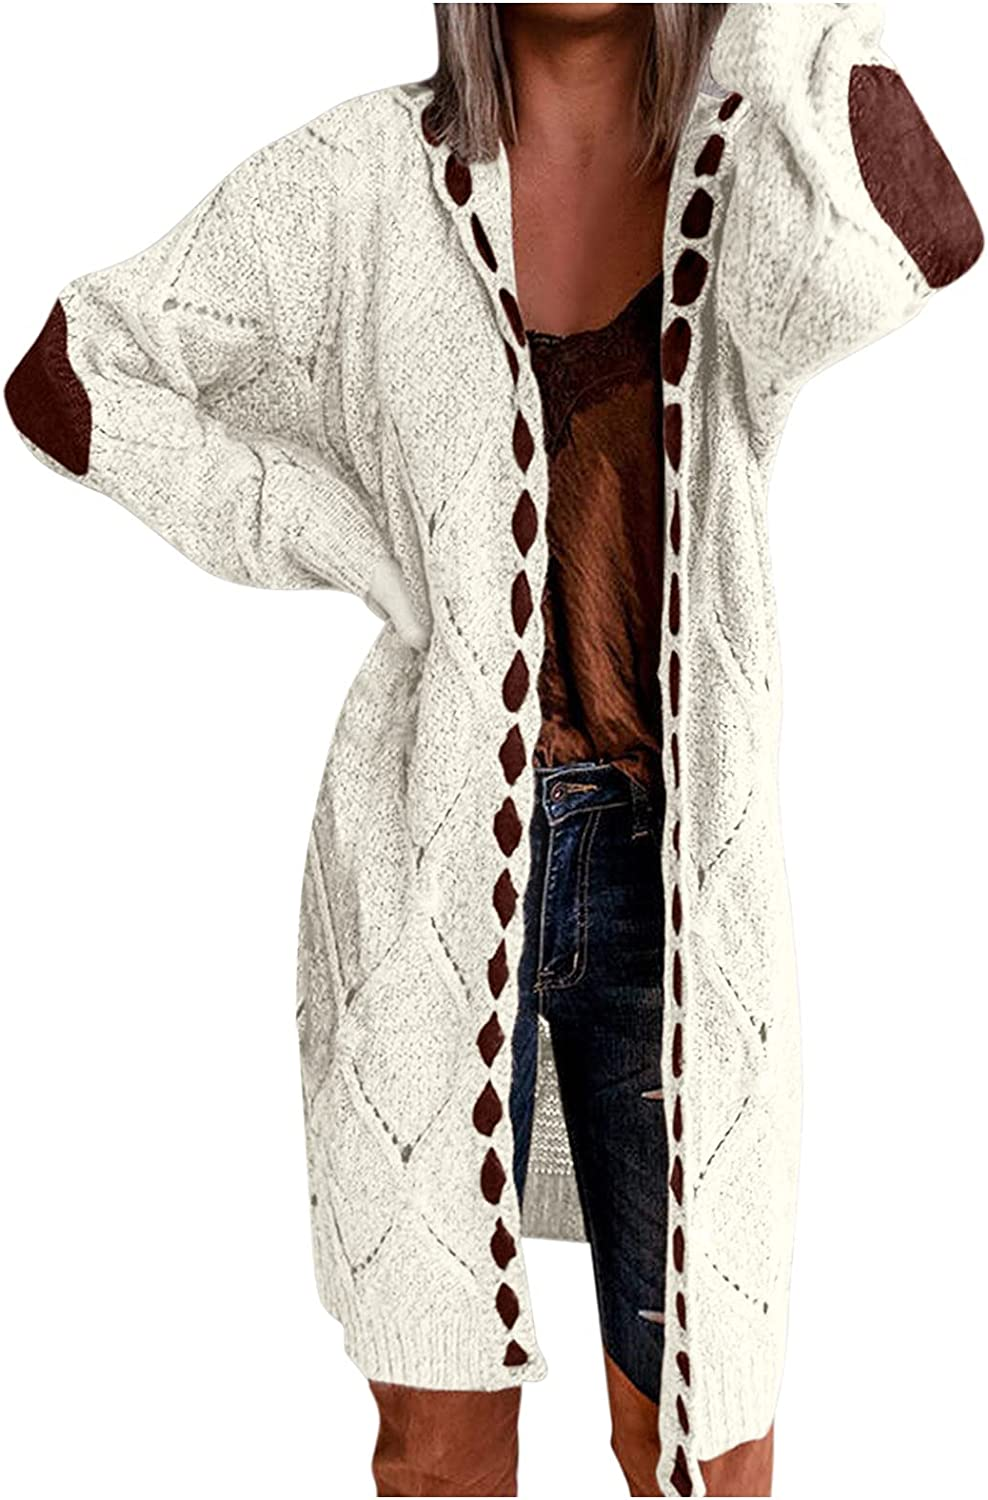 Sunhusing Women's Long Sleeve Open Front Casual Lightweight Soft Knit Cardigan Sweater Color Block Outerwear with Pockets